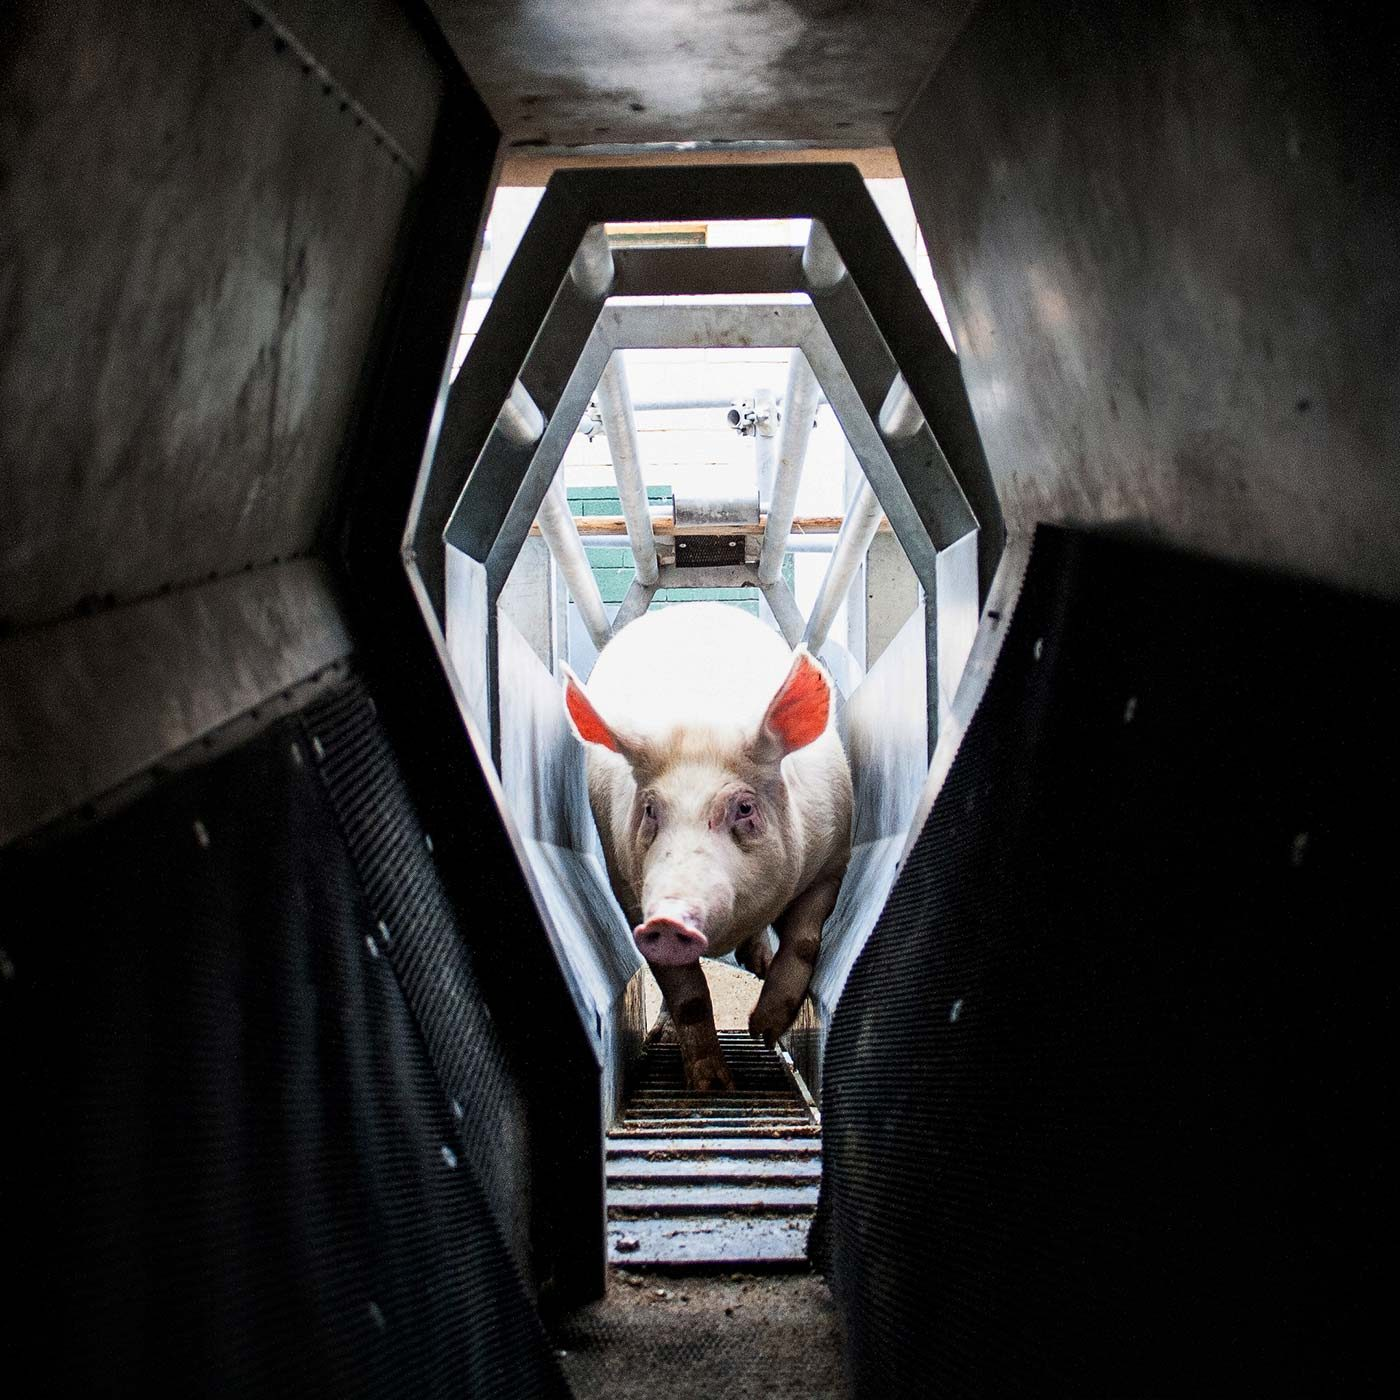 Suffering and Agony Inside Italian Pig Slaughterhouses